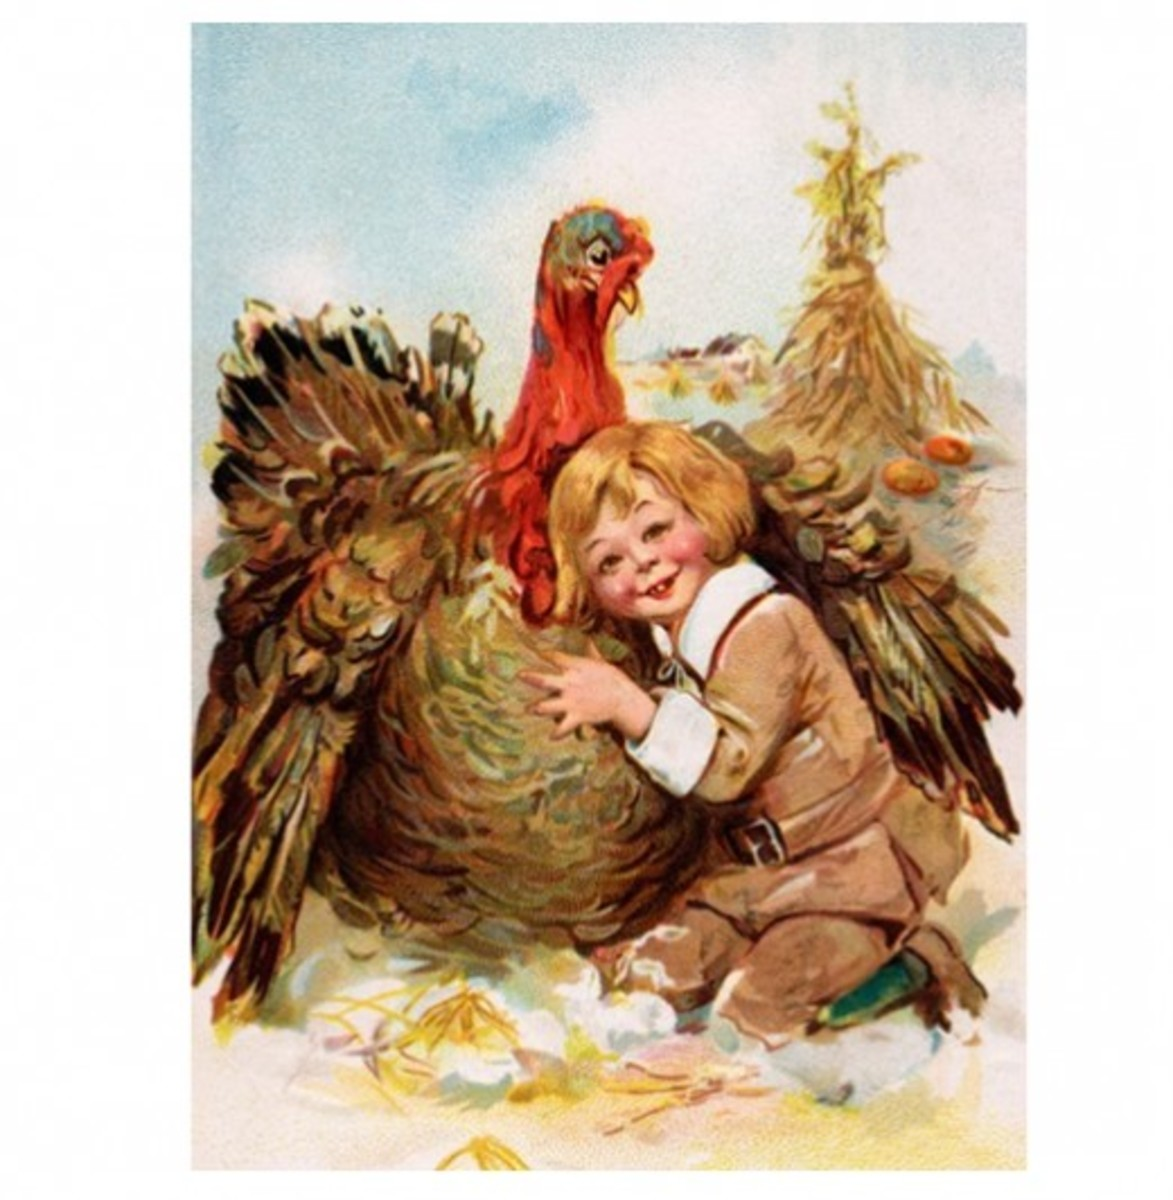 Vintage Image of Pilgrim Boy with Holiday Turkey